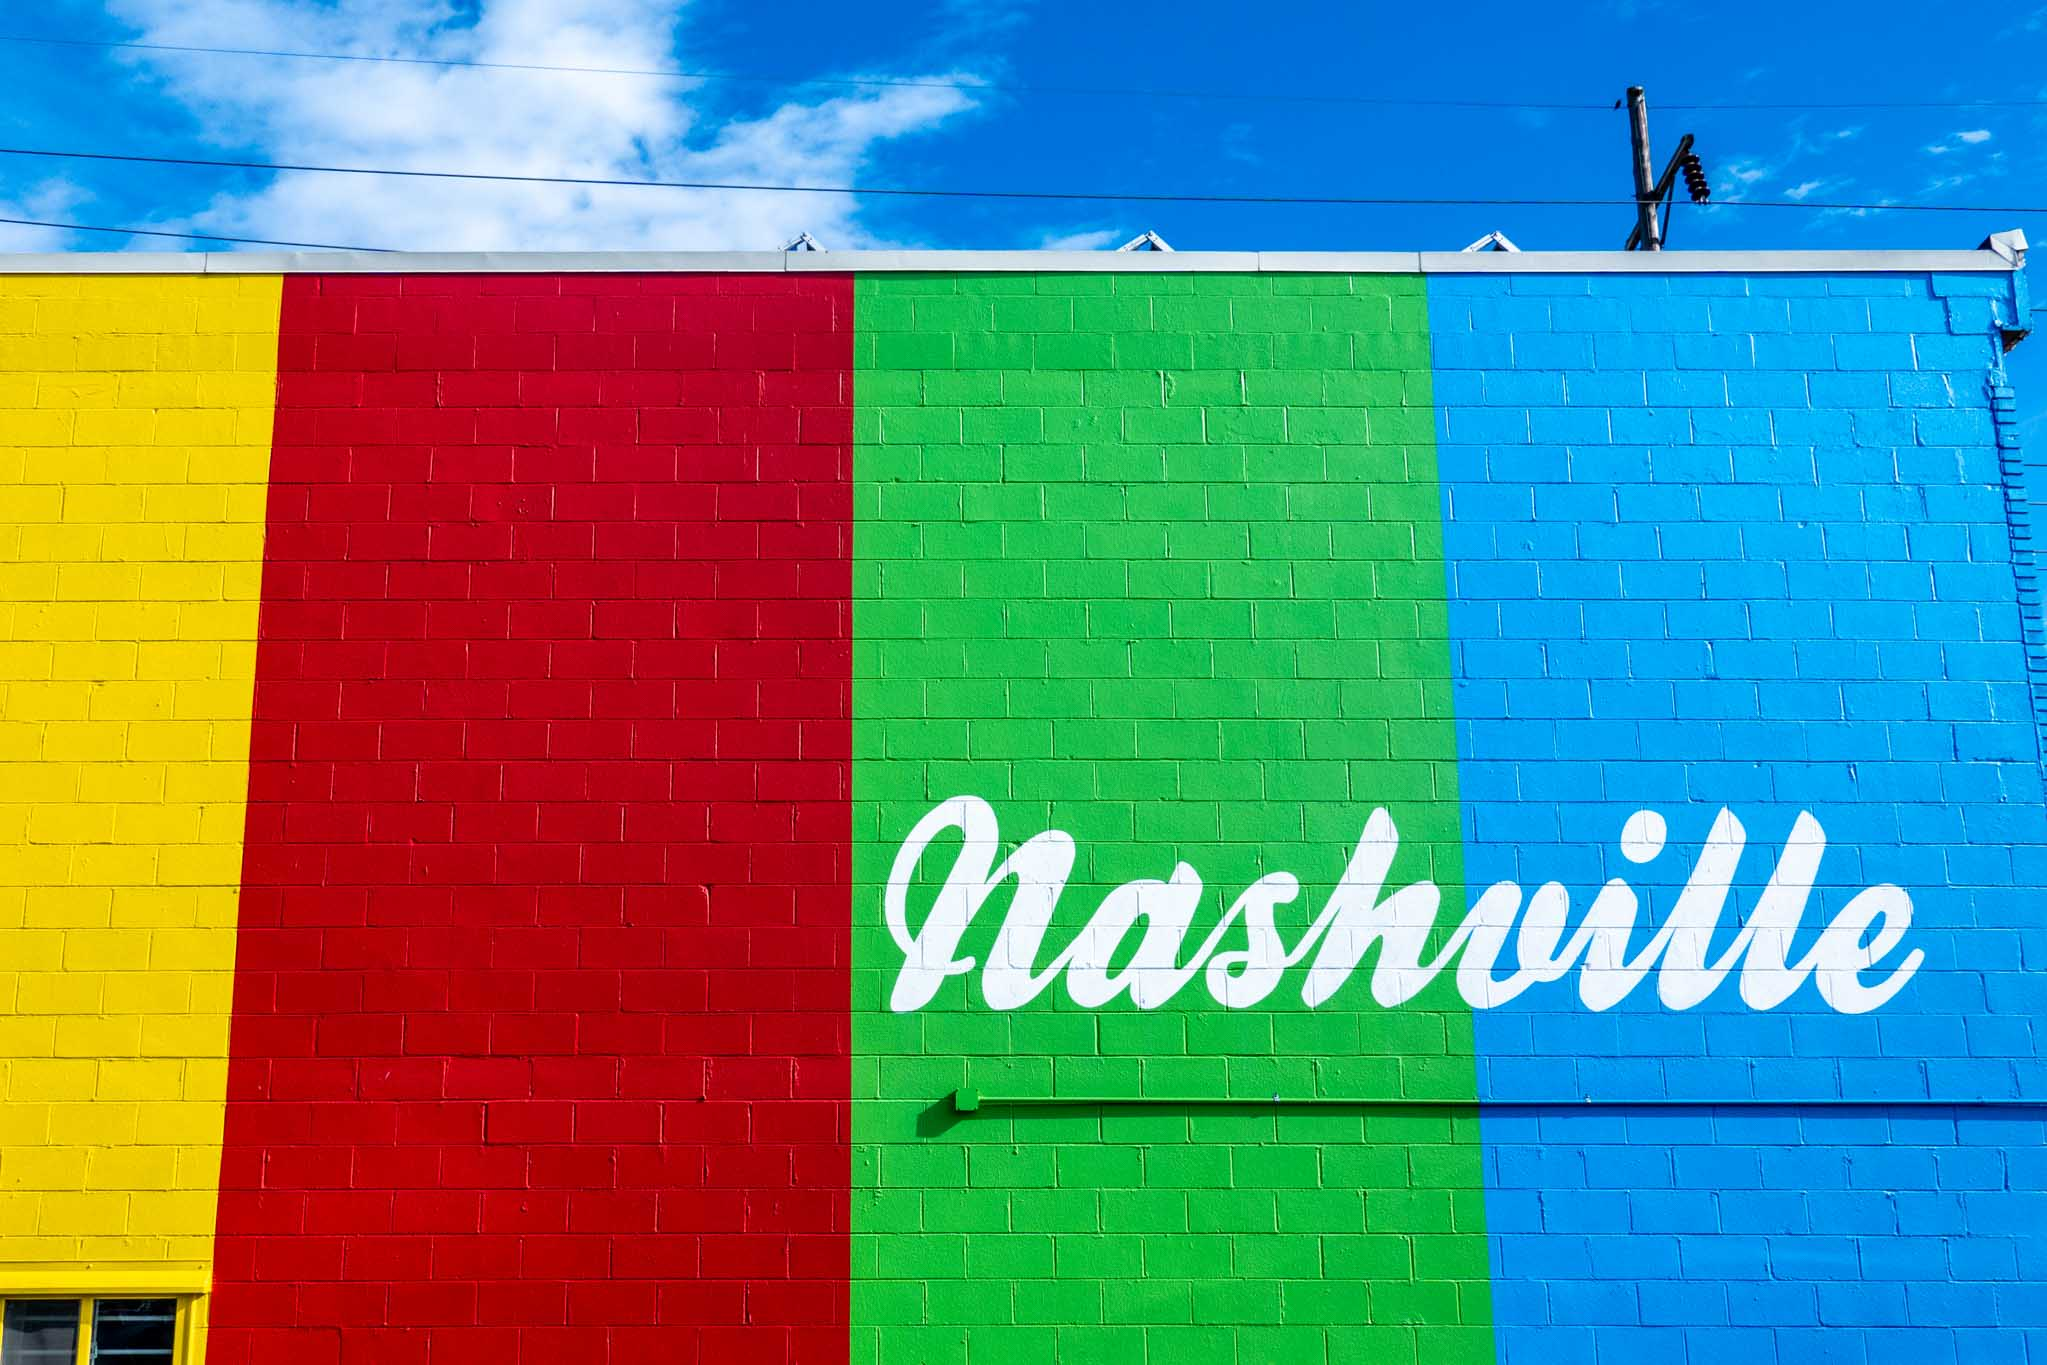 Color bar street art mural in Nashville Tennessee